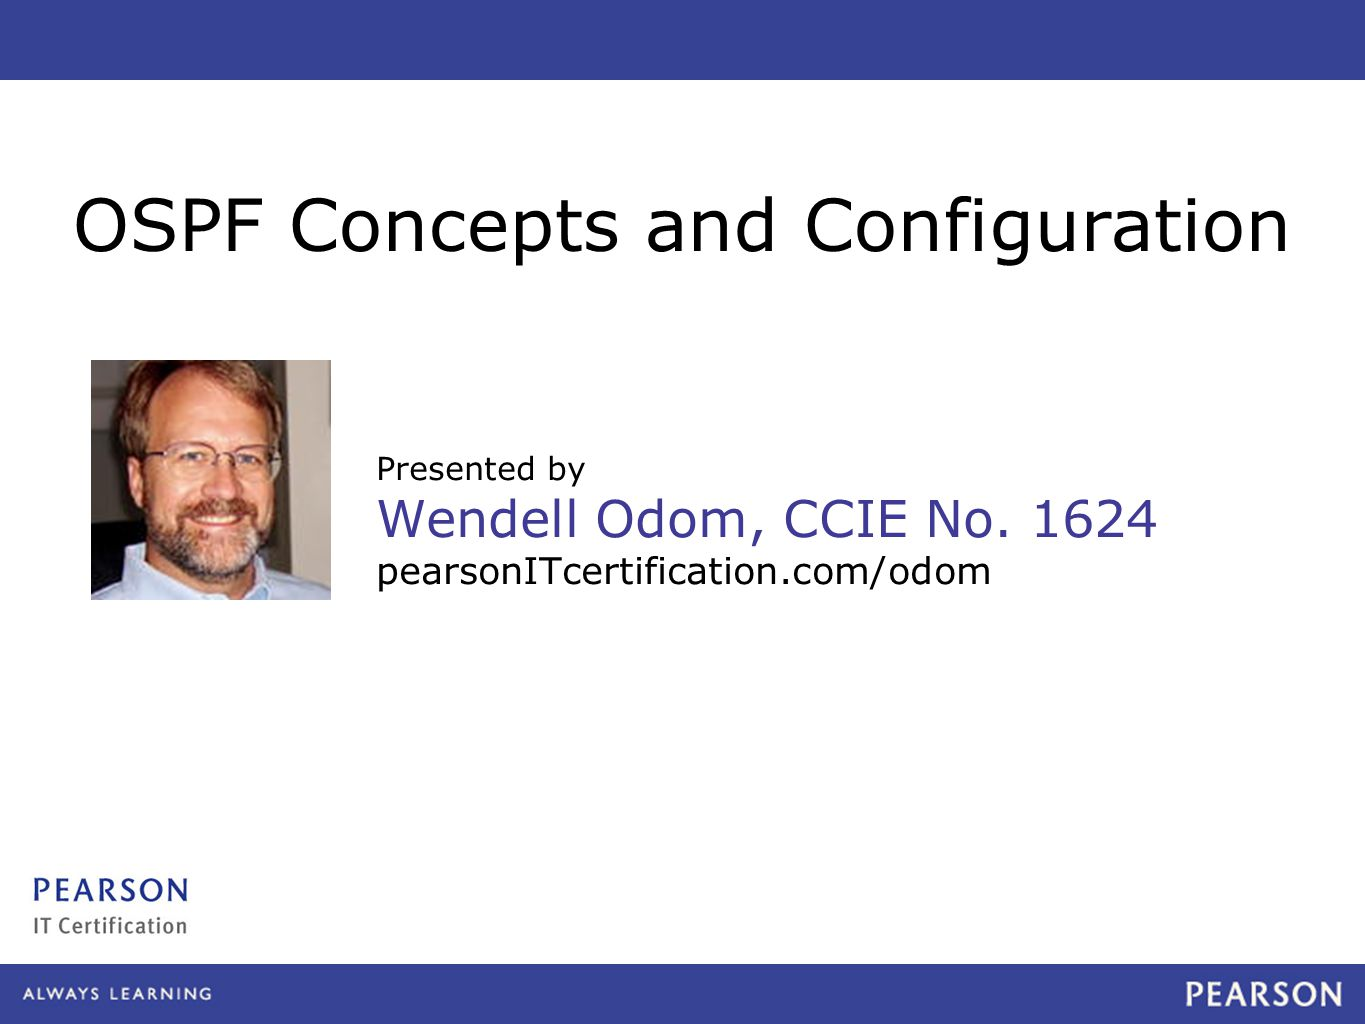 Presented by Wendell Odom, CCIE No.